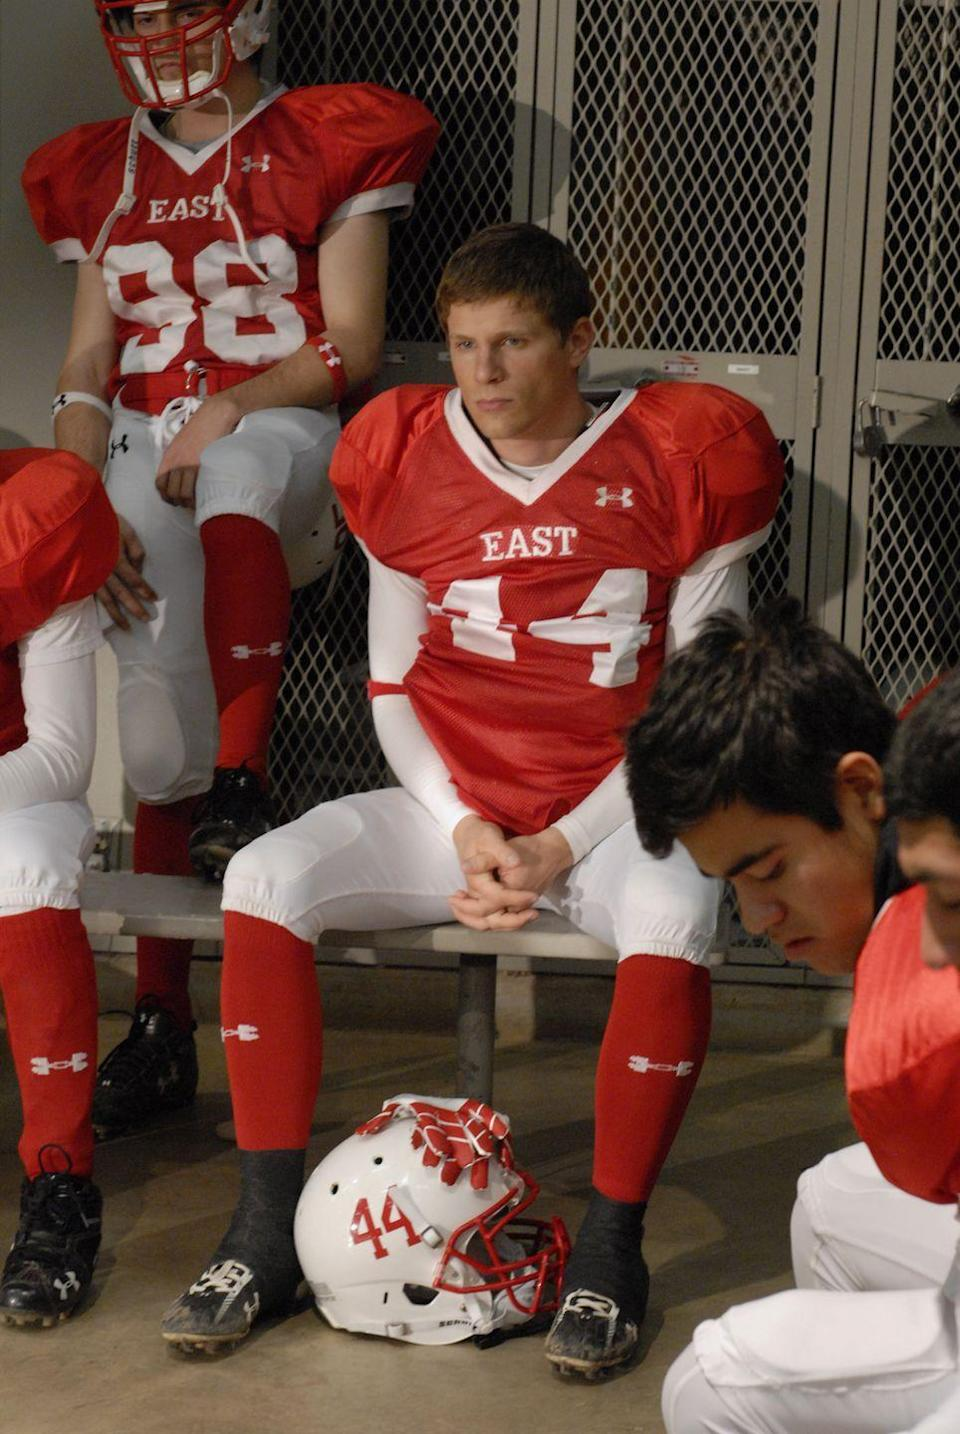 <p>Luke Cafferty was not supposed to be on the Lions—at least according to Luke Cafferty. During his time on the show, Luke went through an injury and dealt with a difficult coach and an unplanned pregnancy. By the end of the series, Cafferty not only straightened himself out, but is seen leaving his state ring to girlfriend Becky as he he departs to enlist in the U.S. military. </p><p>Before Lauria joined the show, he had cameos in <em>30 Rock, Law and Order: Criminal Intent</em> and a recurring role in <em>Lipstick Jungle</em>.</p>